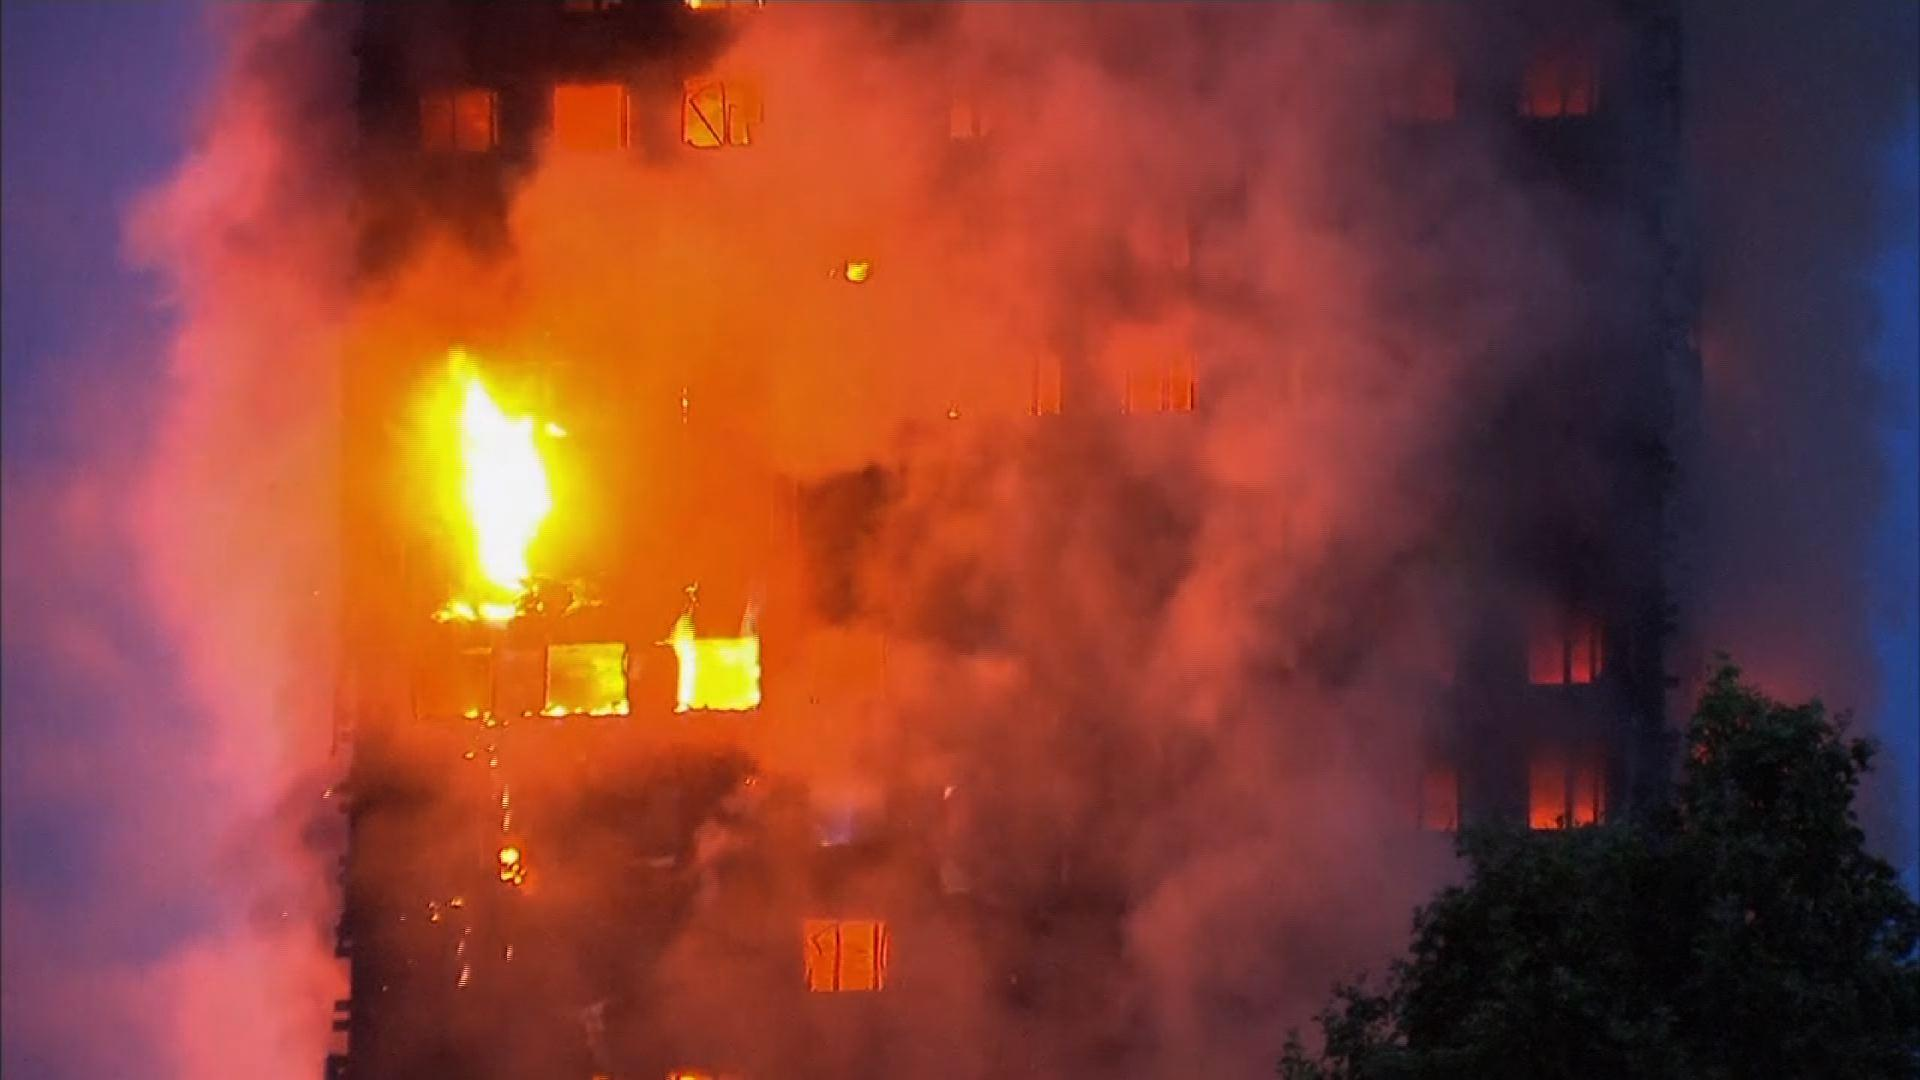 Four alarm fire at new york city high rise injures 24 people two critically fox news - Four Alarm Fire At New York City High Rise Injures 24 People Two Critically Fox News 24